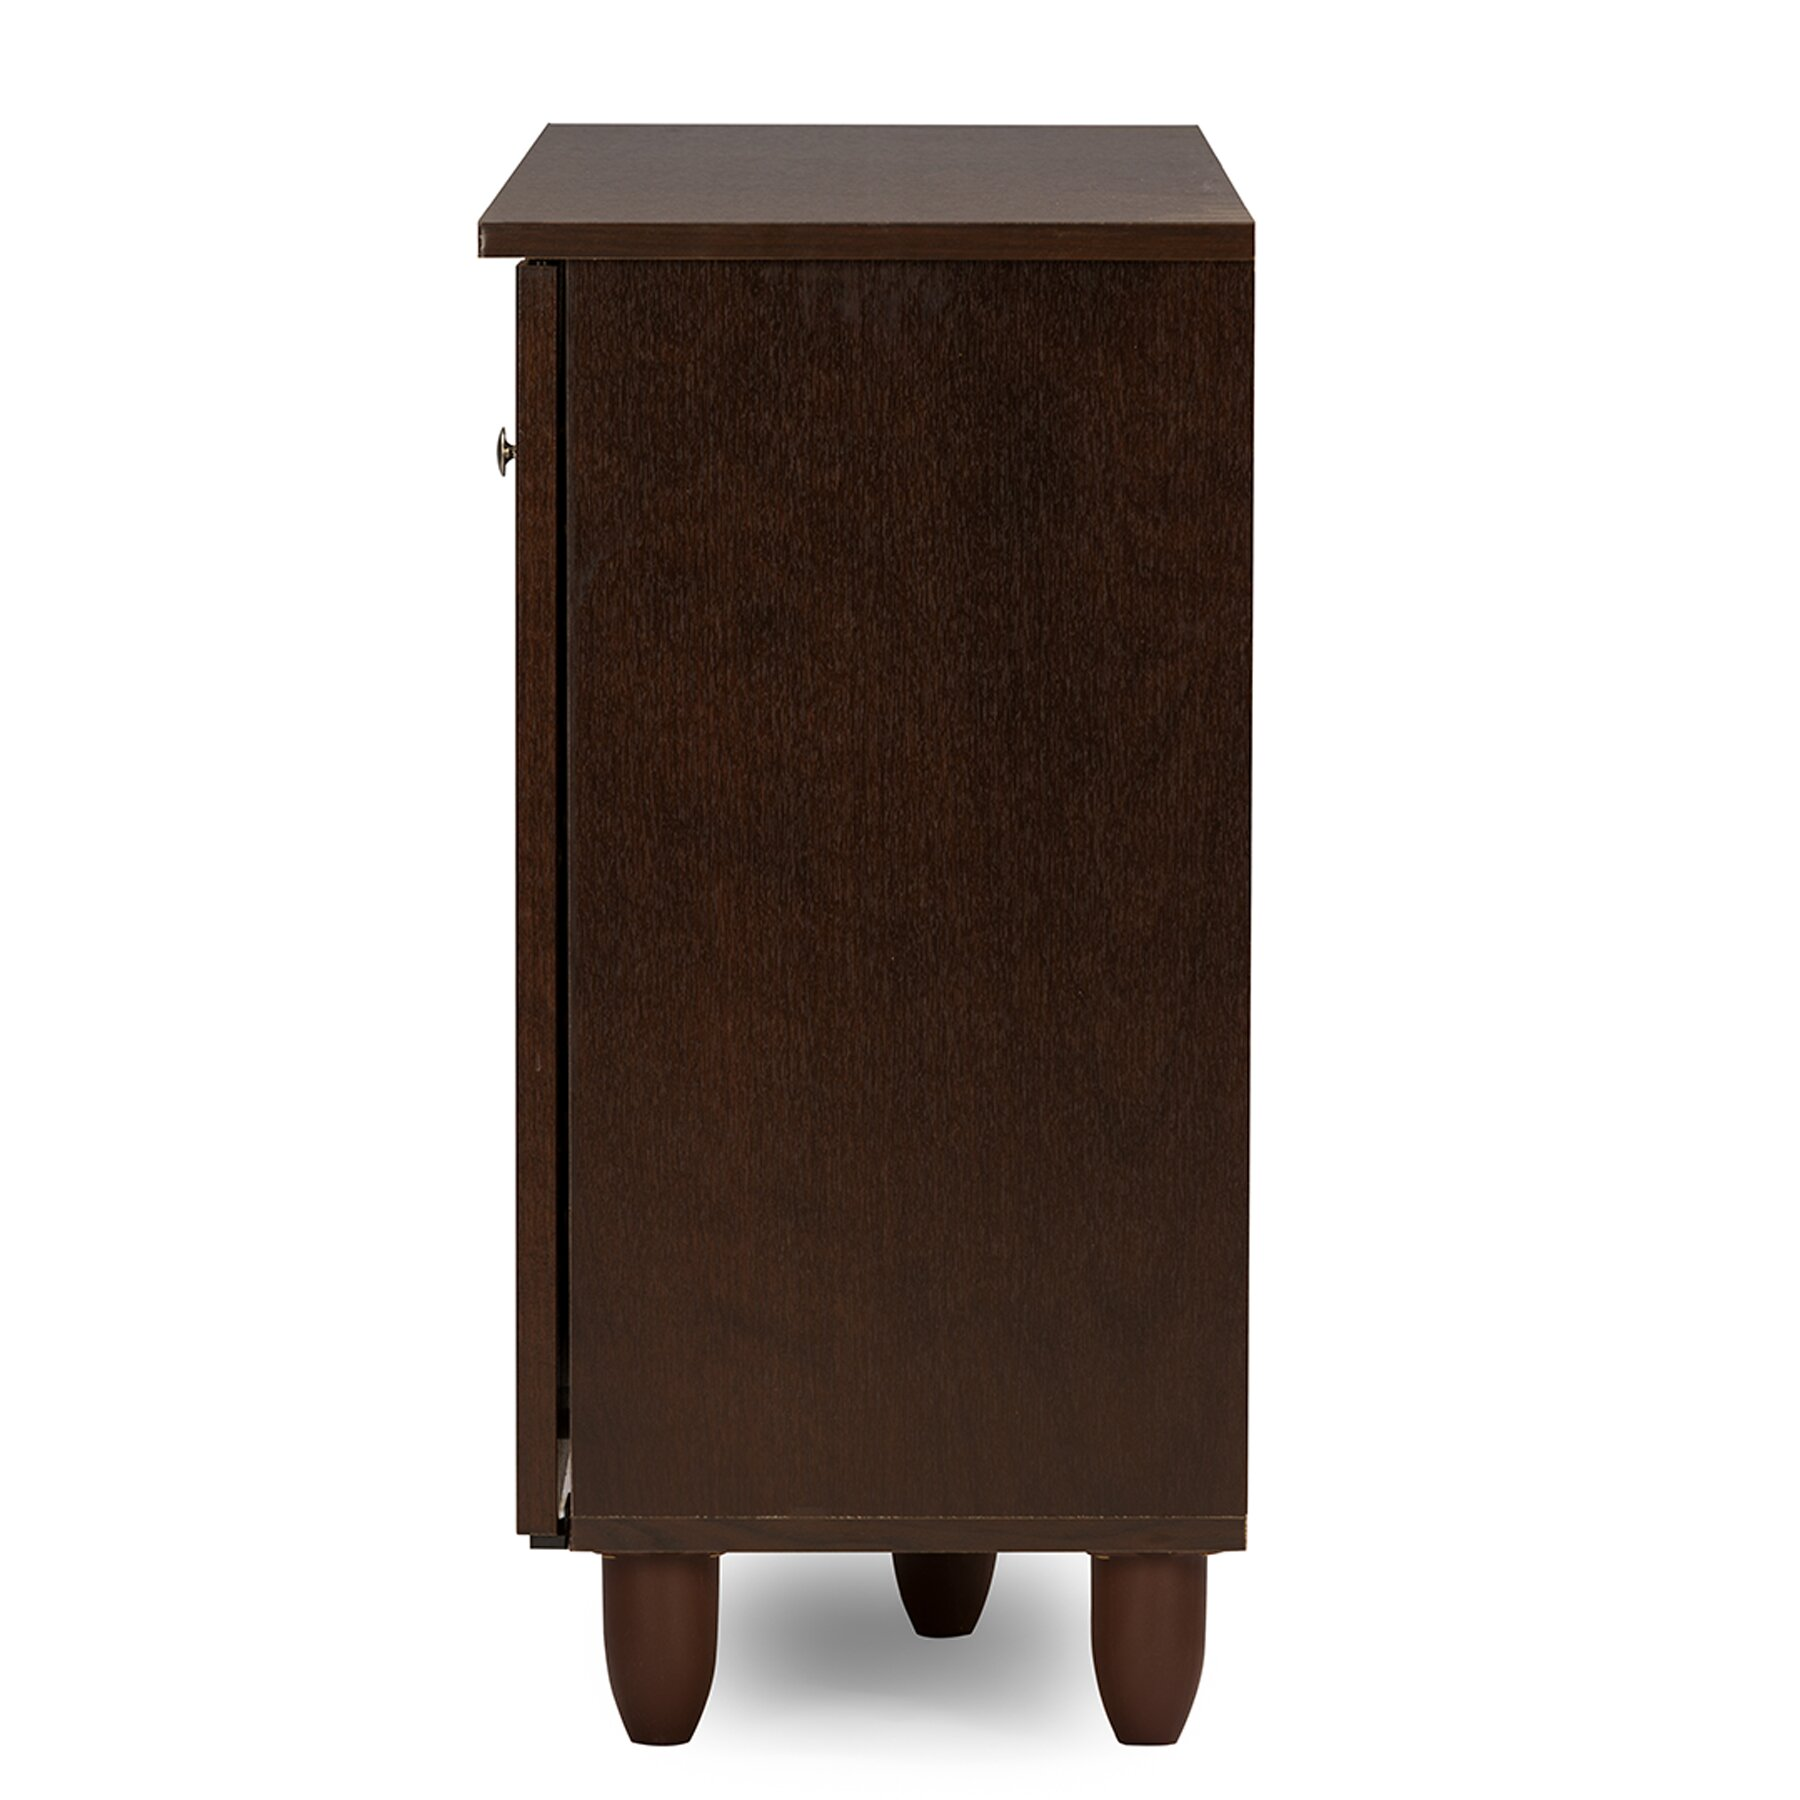 Wholesale Interiors Baxton Studio Winda 12-Pair Shoe Storage Cabinet & Reviews | Wayfair